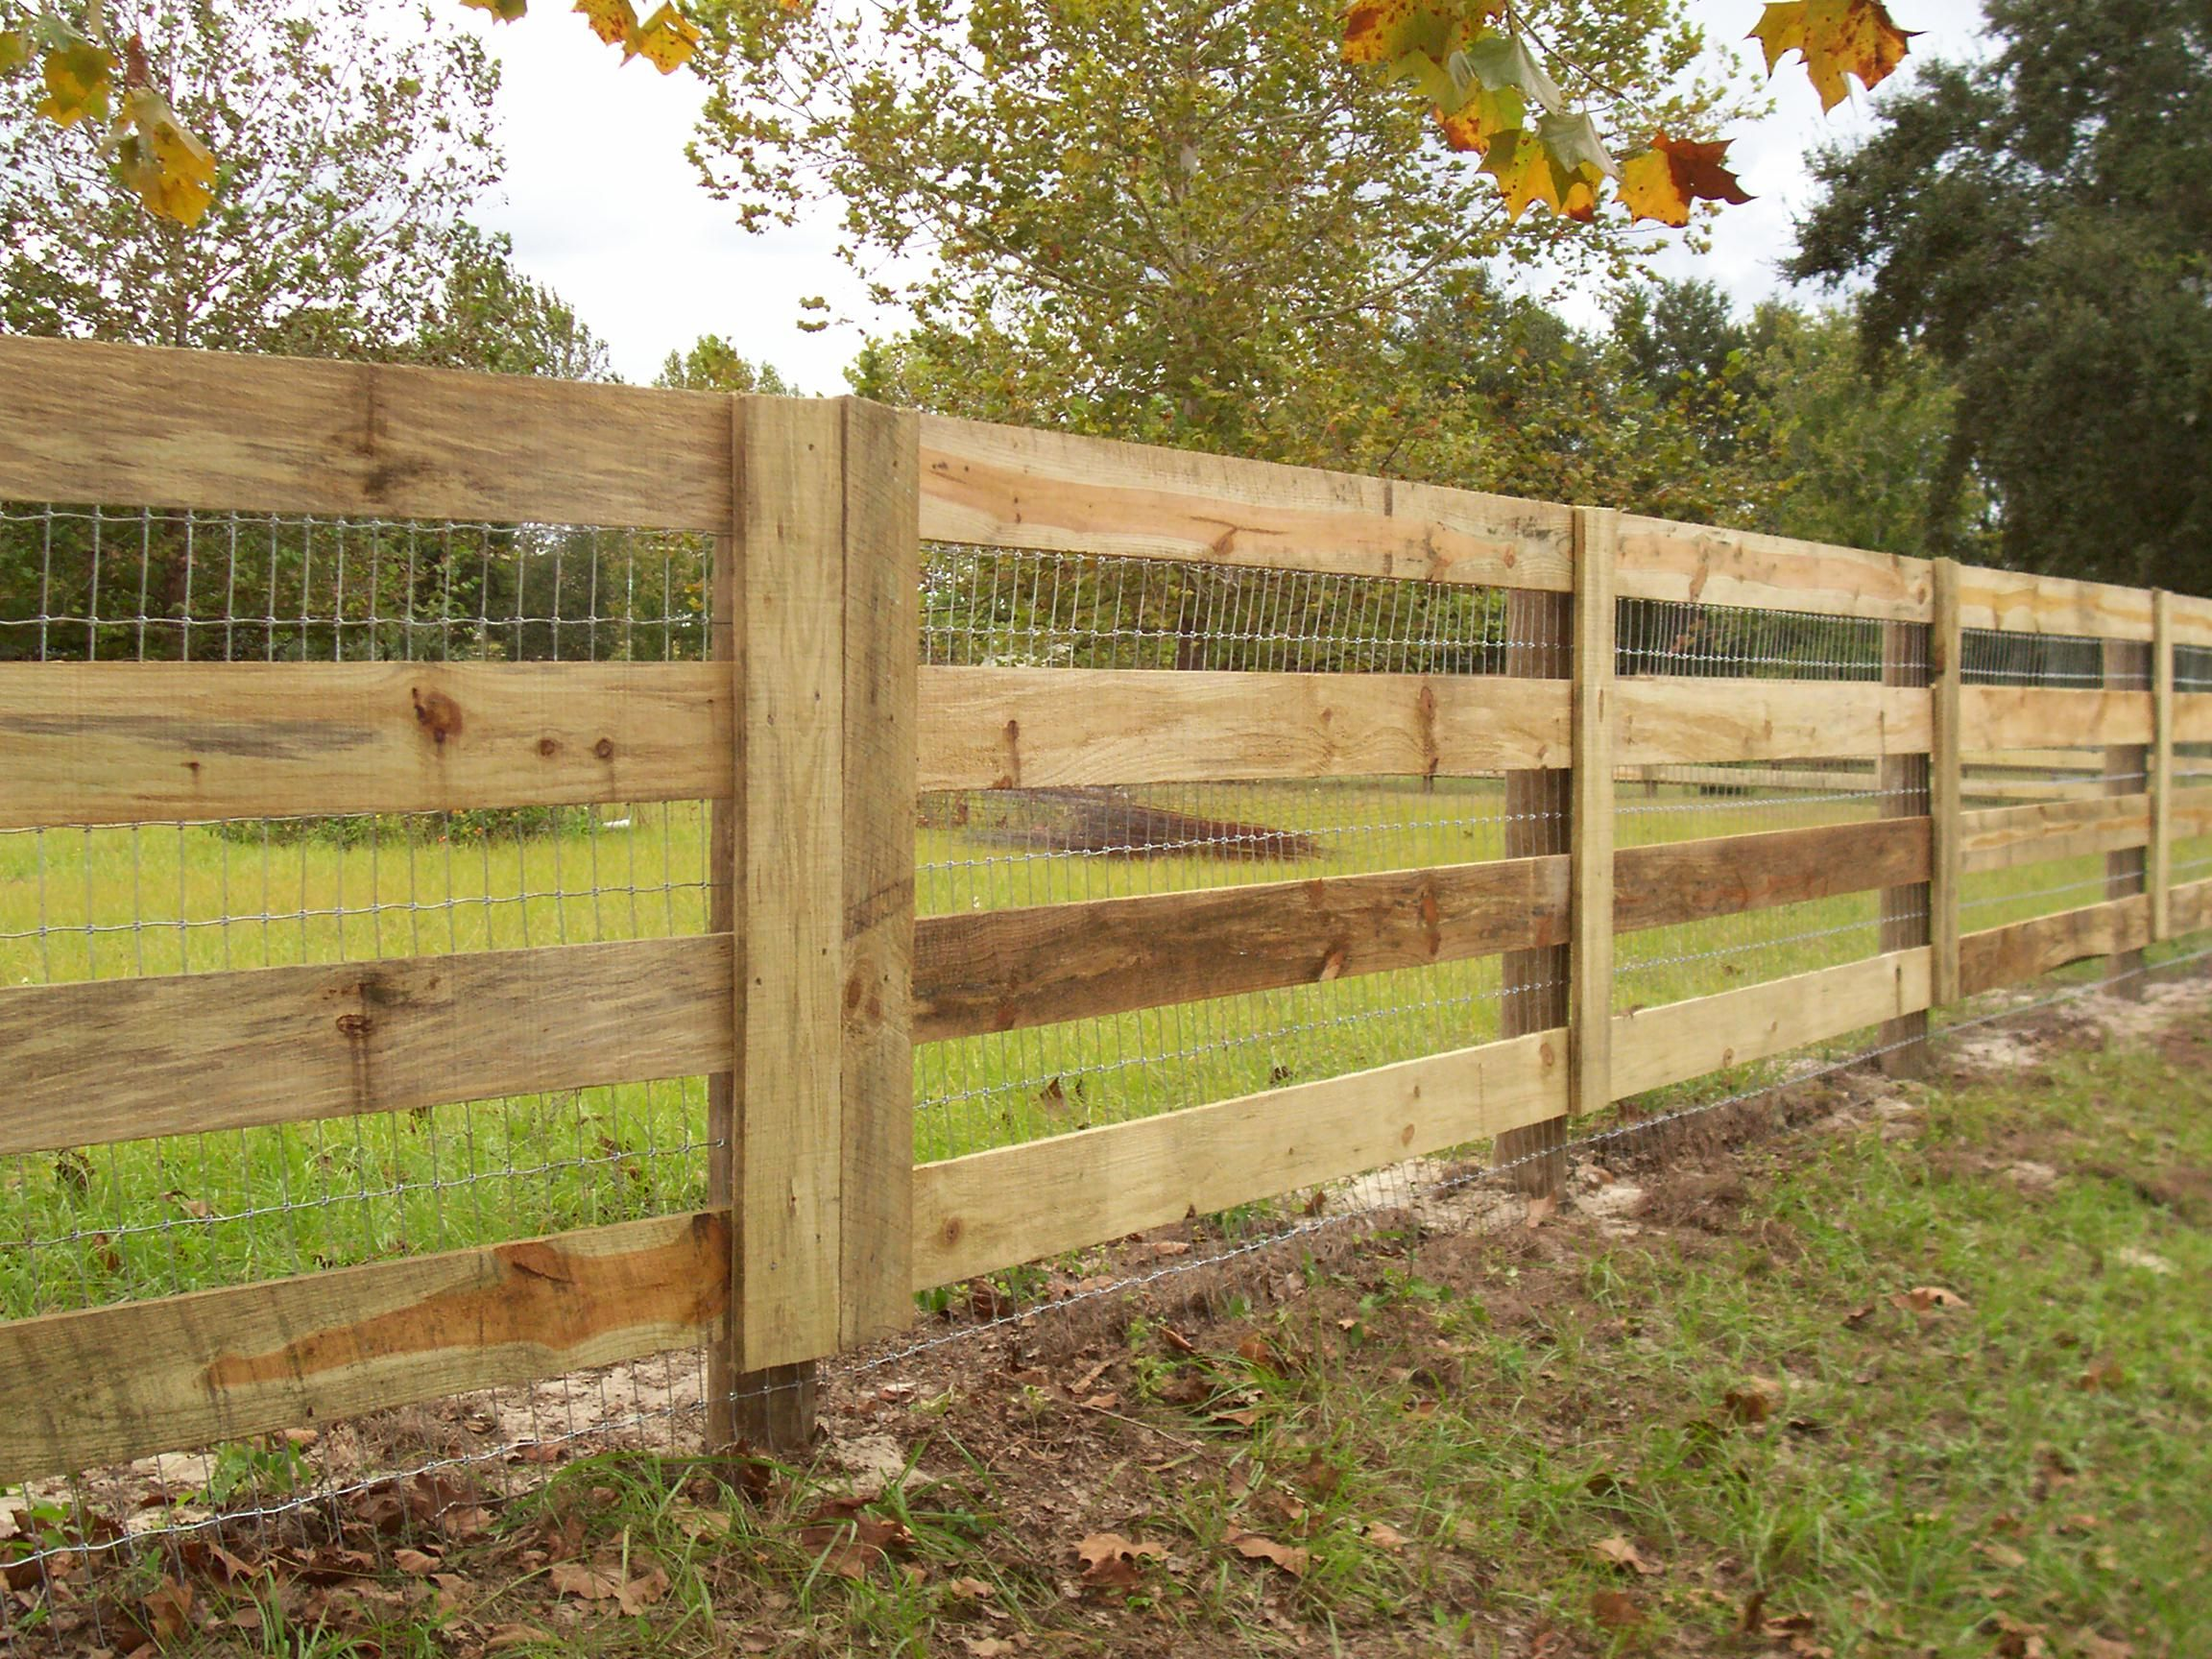 custom wood horse fence design with wire for added protection